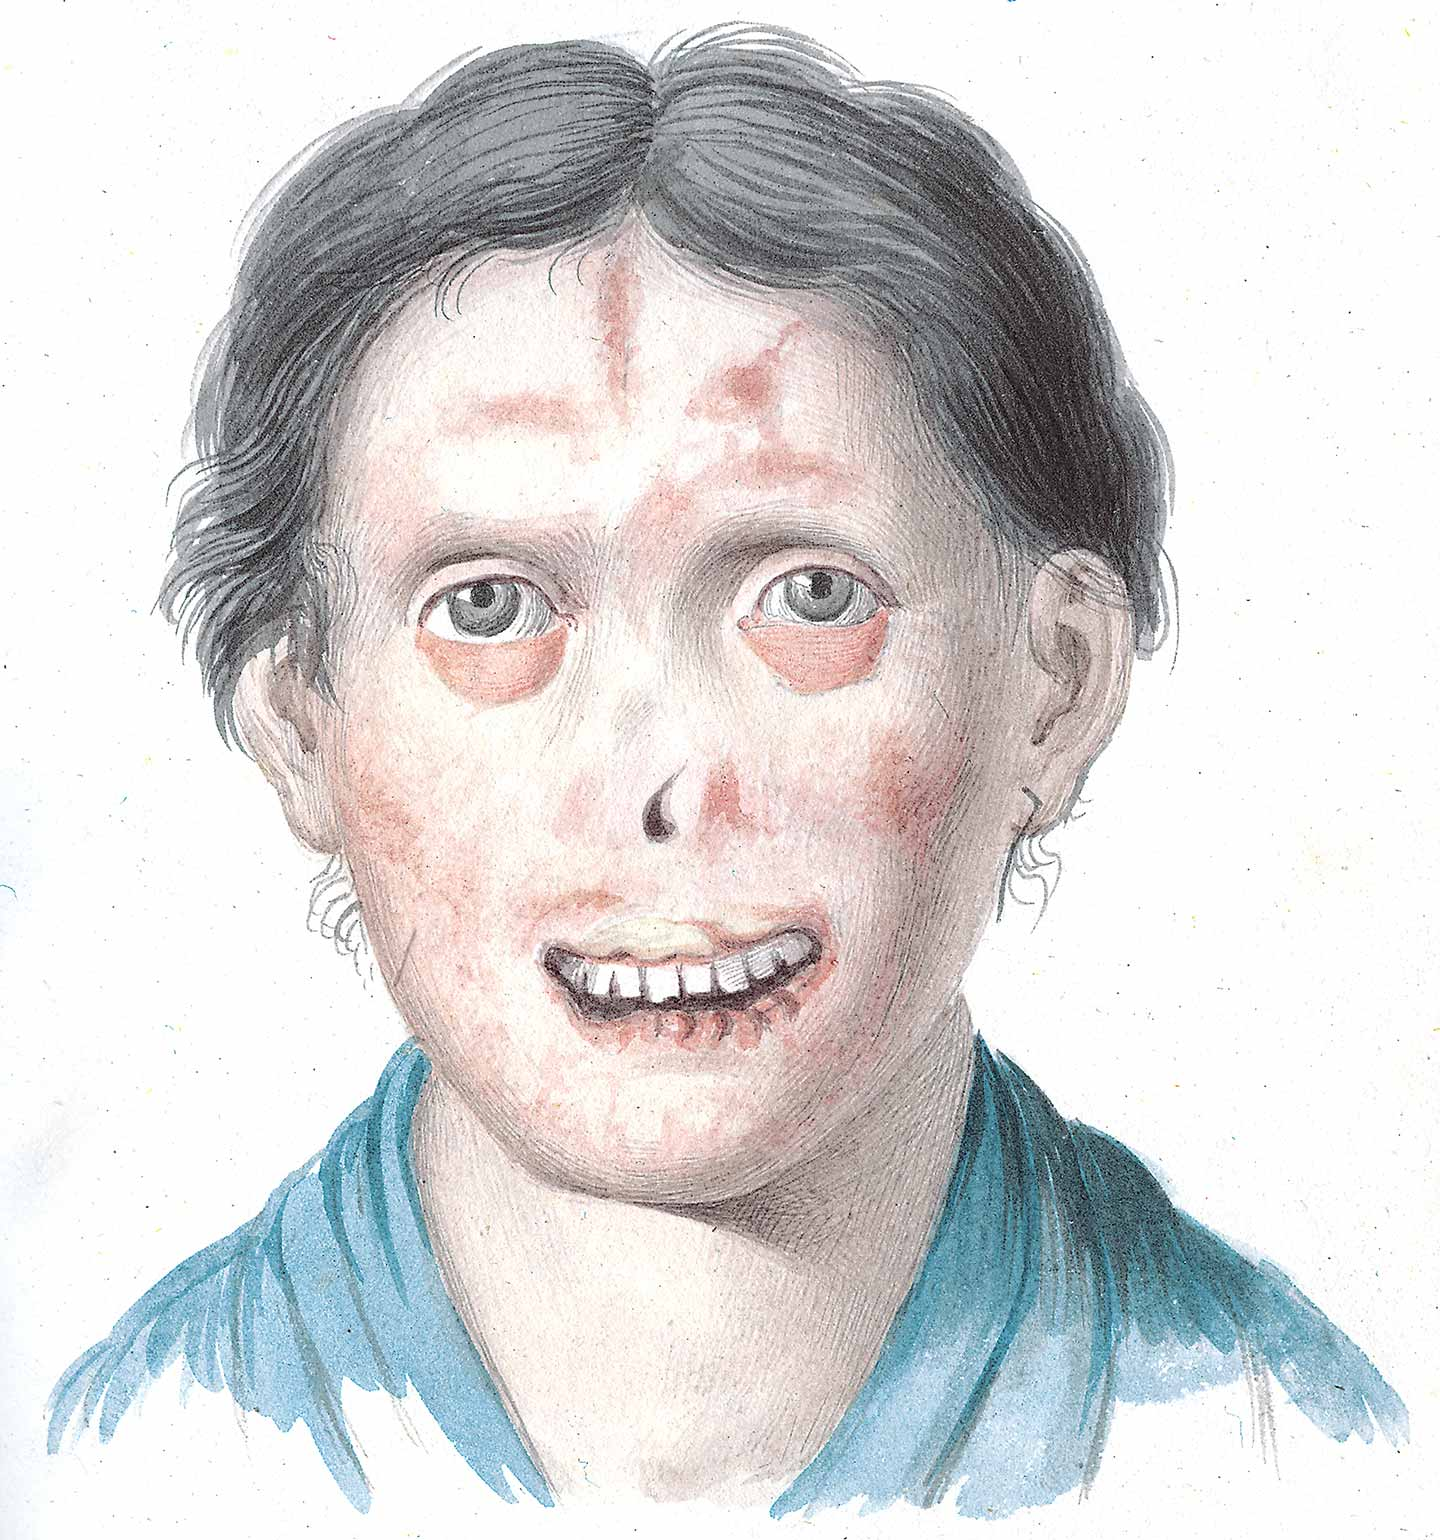 Woman with facial lesions.